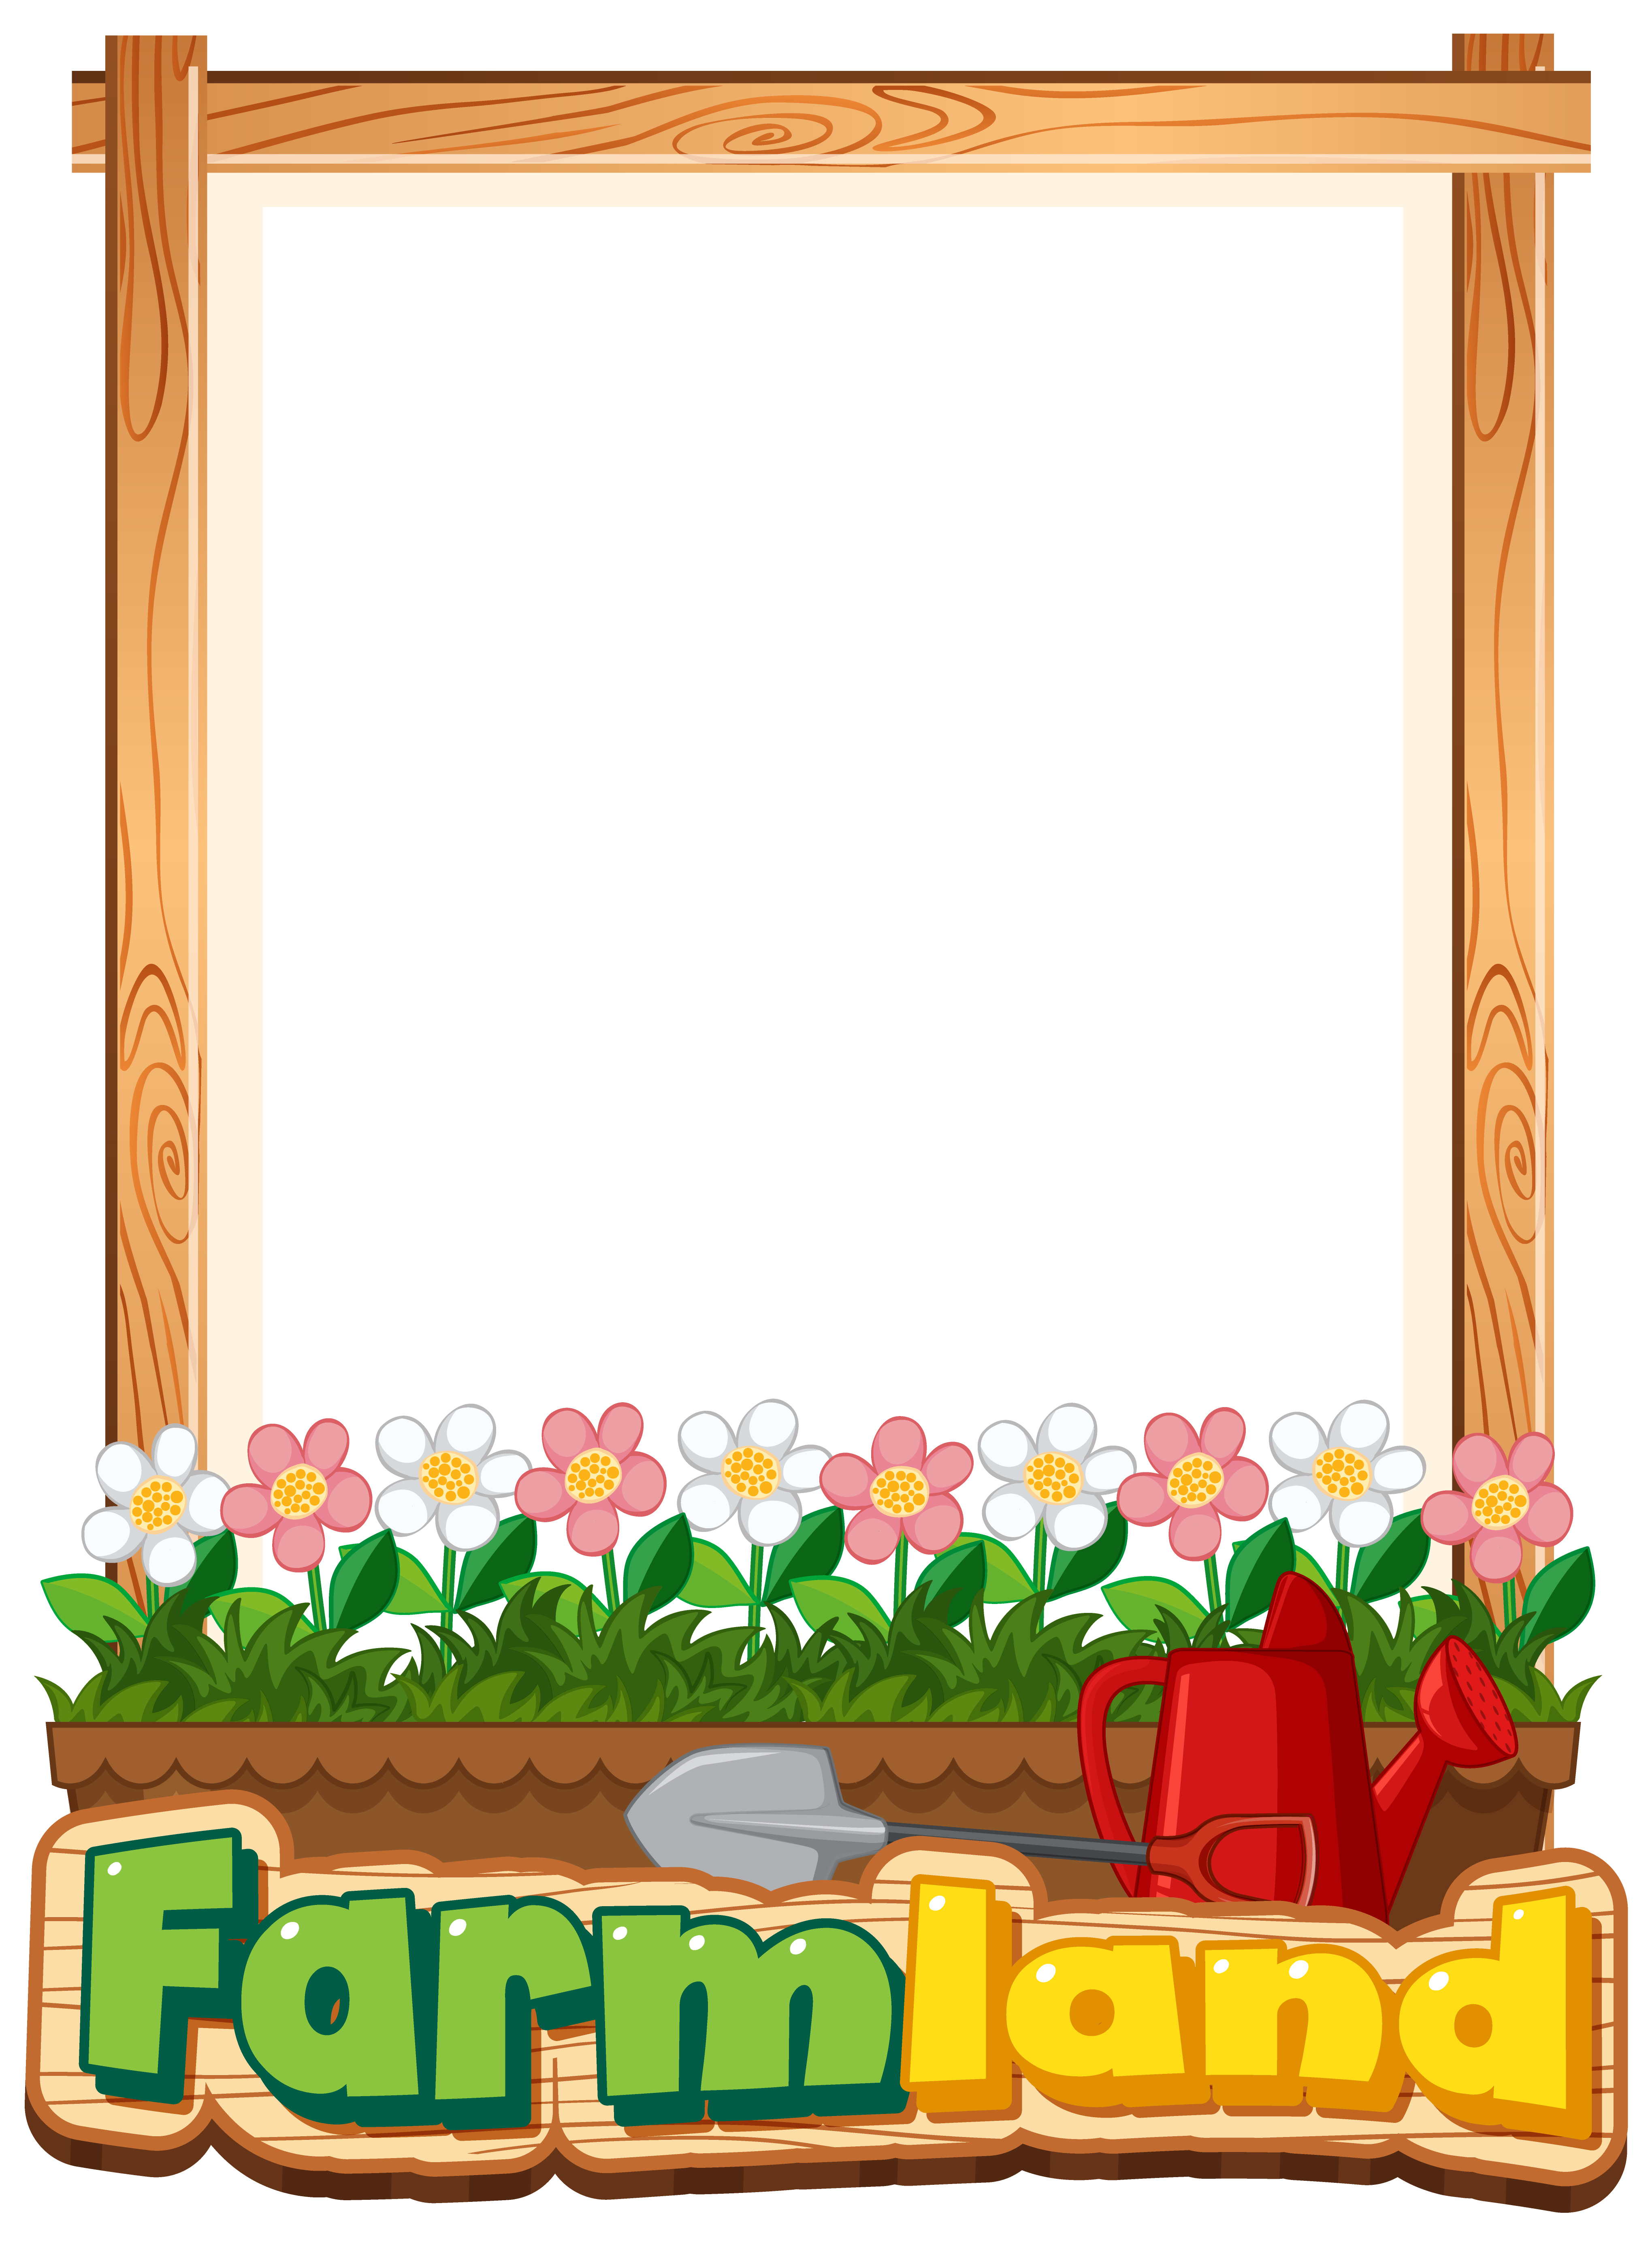 Border template design with flowers in garden - Download Free